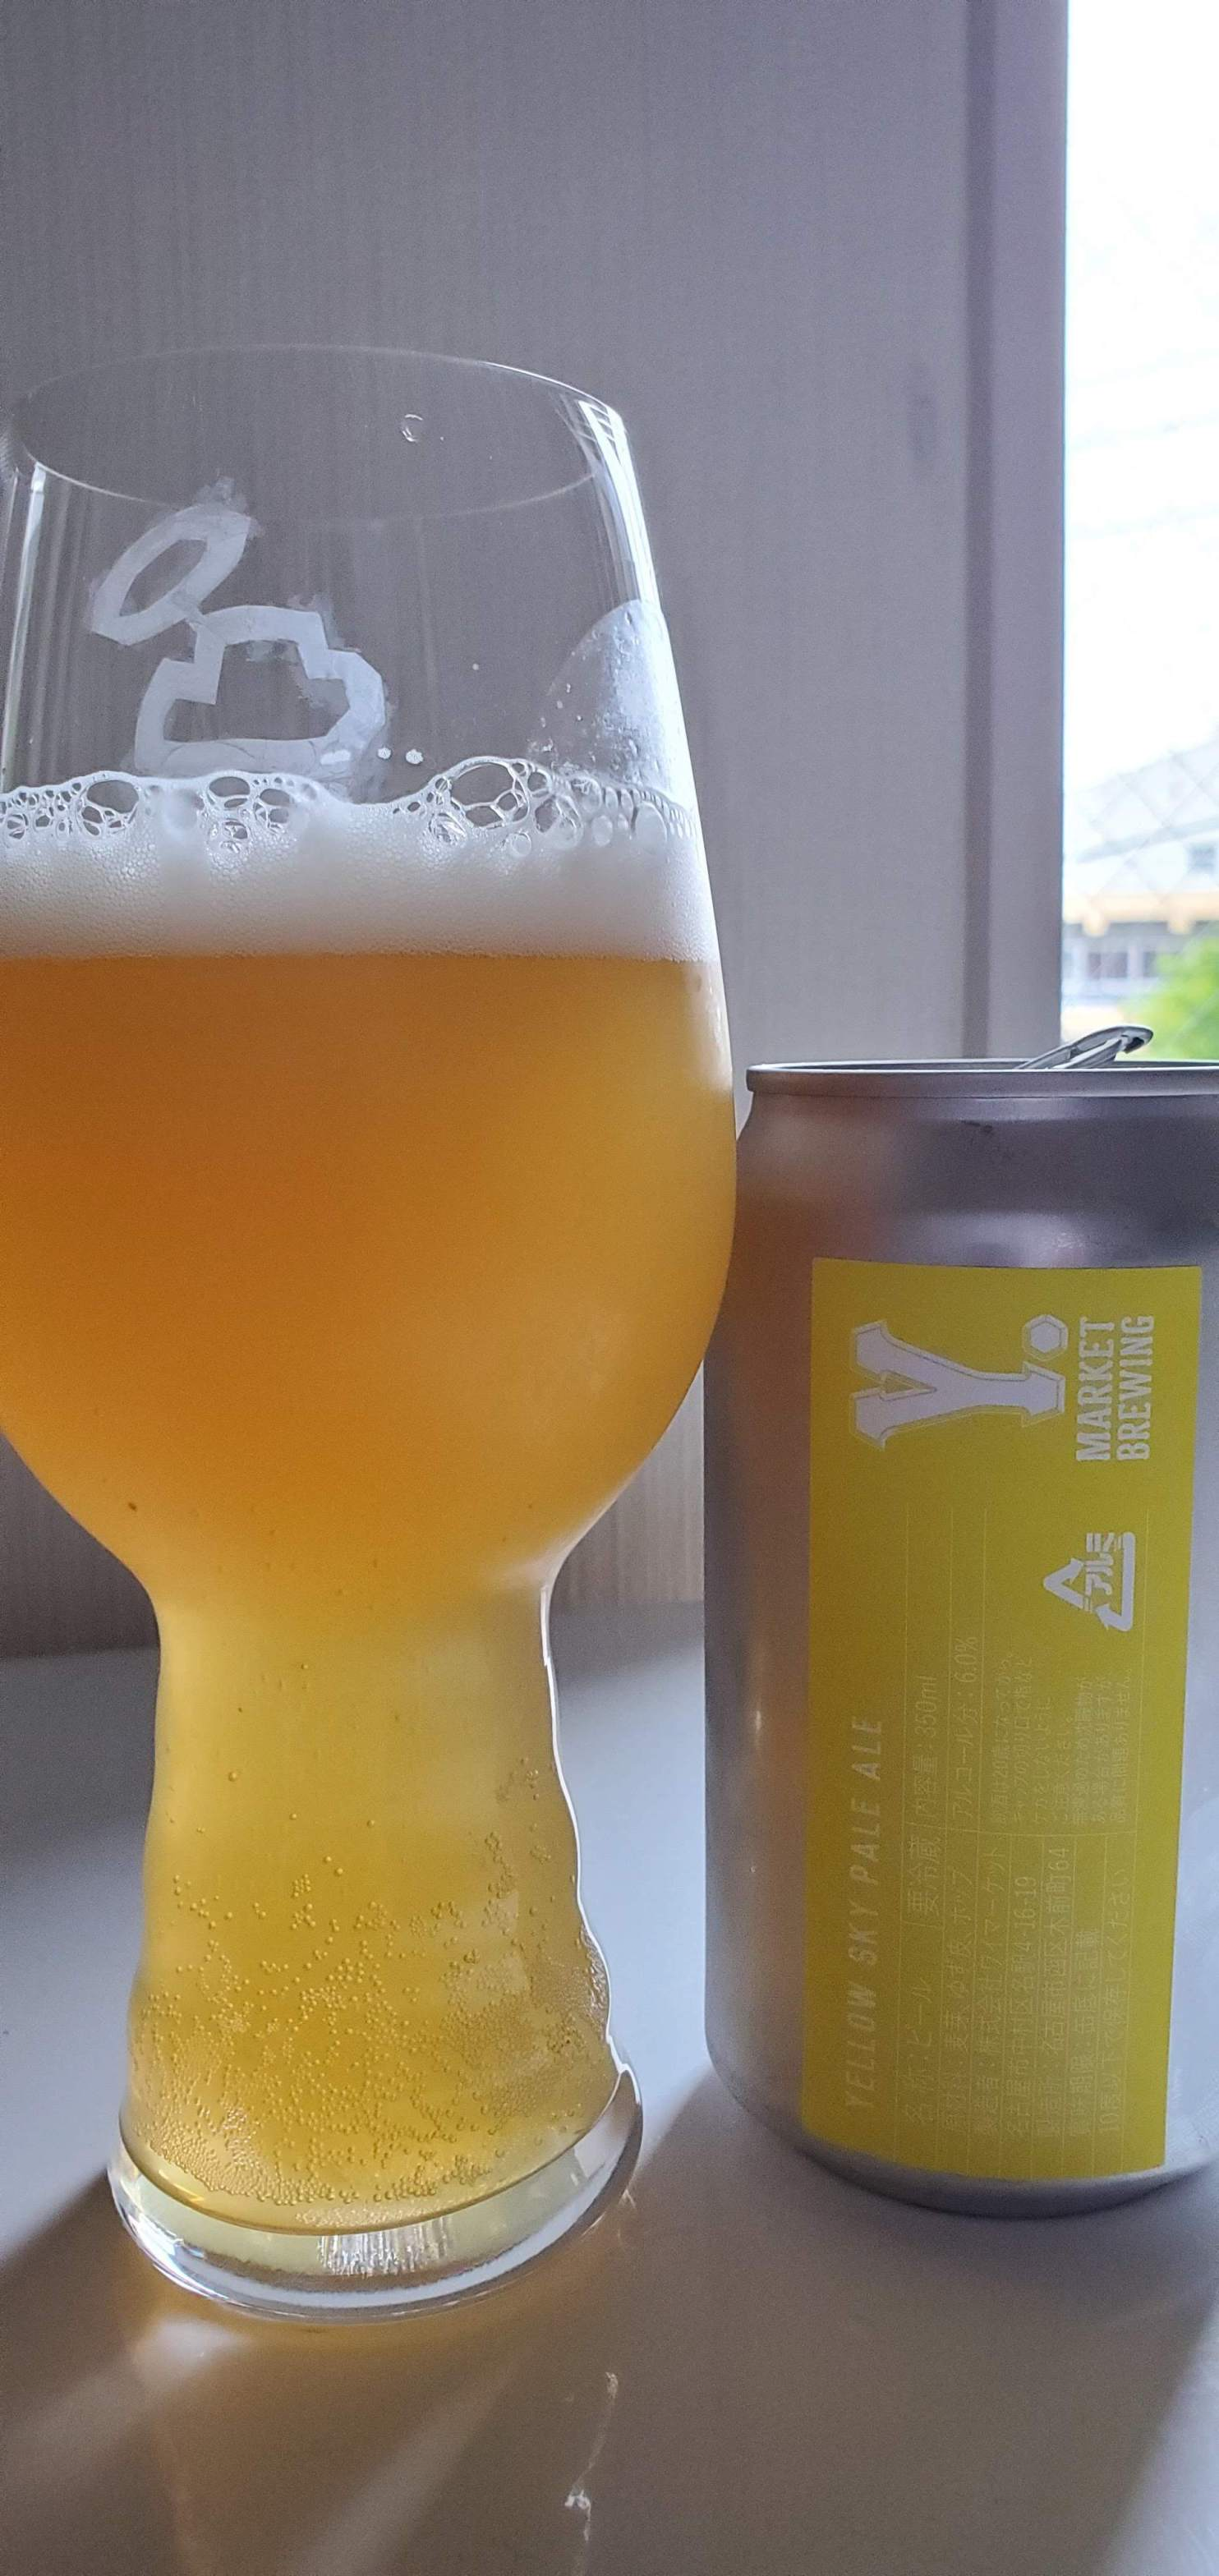 Y Market Another Sky Pale Ale・ワイマーケットアナザースカイペールエール